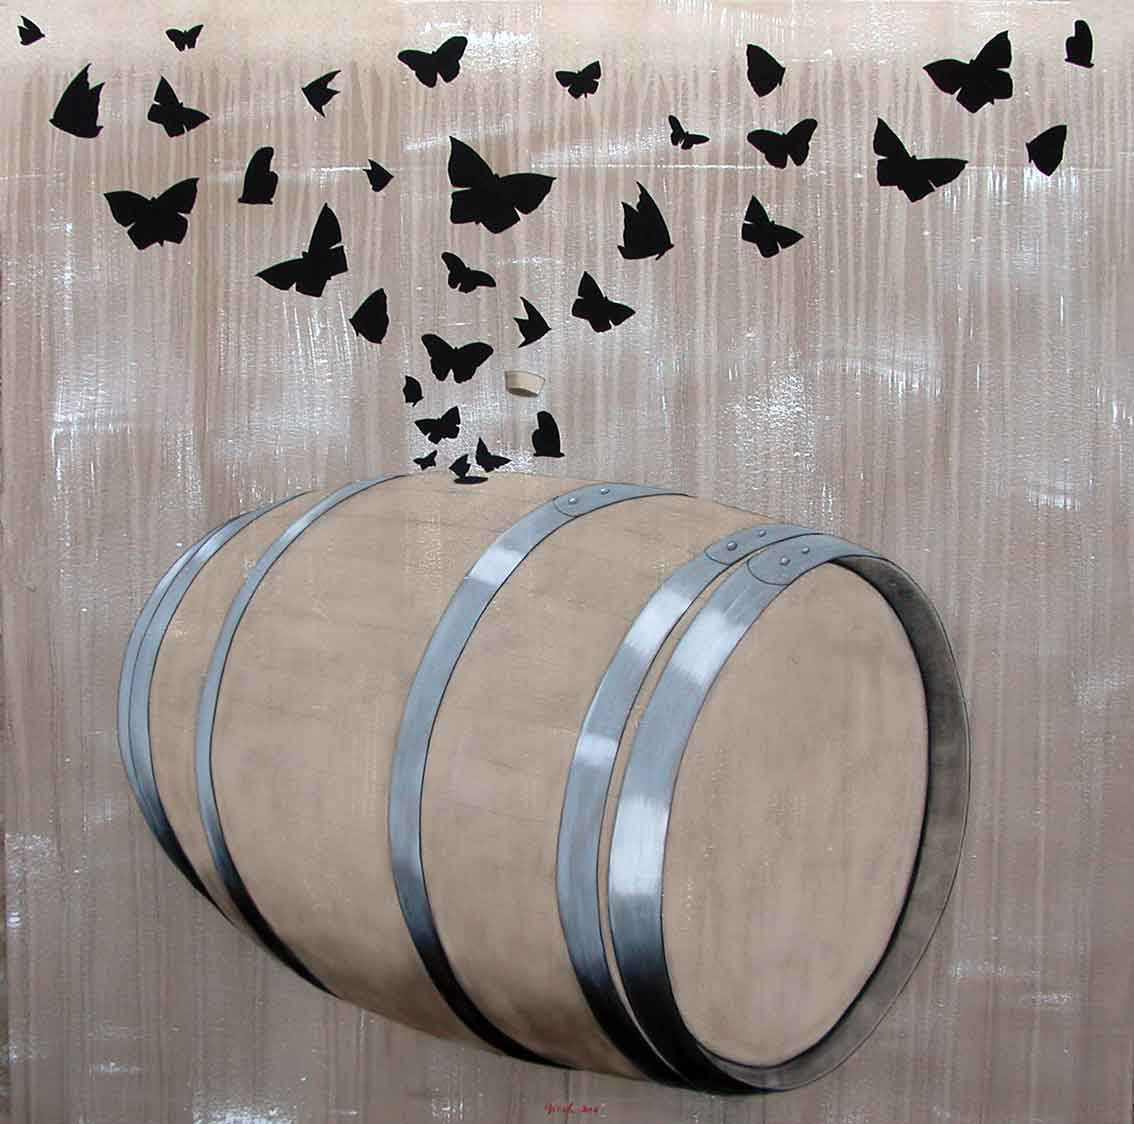 SOTB Barrel-butterfly Animal painting by Thierry Bisch pets wildlife artist painter canvas art decoration